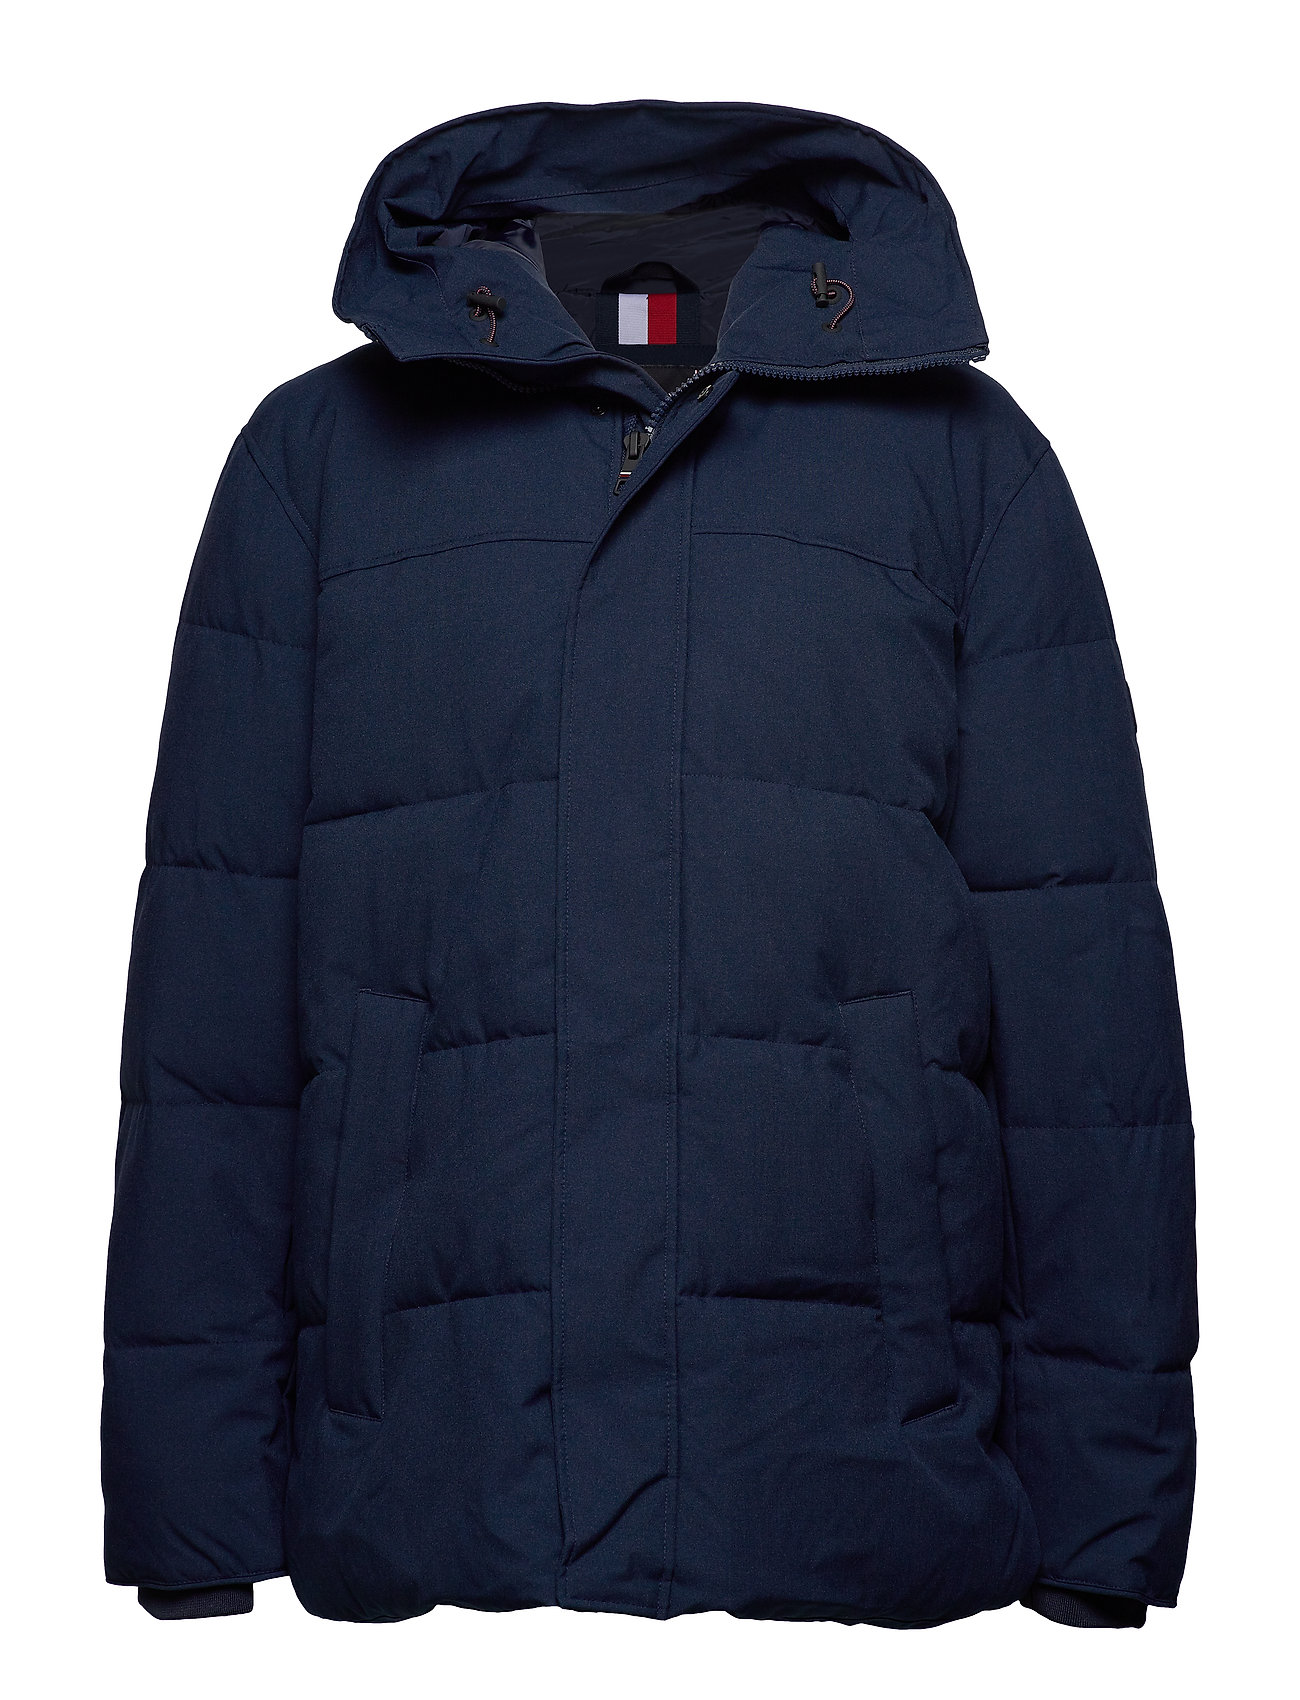 Tommy Hilfiger Big & Tall BT-HEAVY CANVAS BOMBER-B - NAVY BLAZER